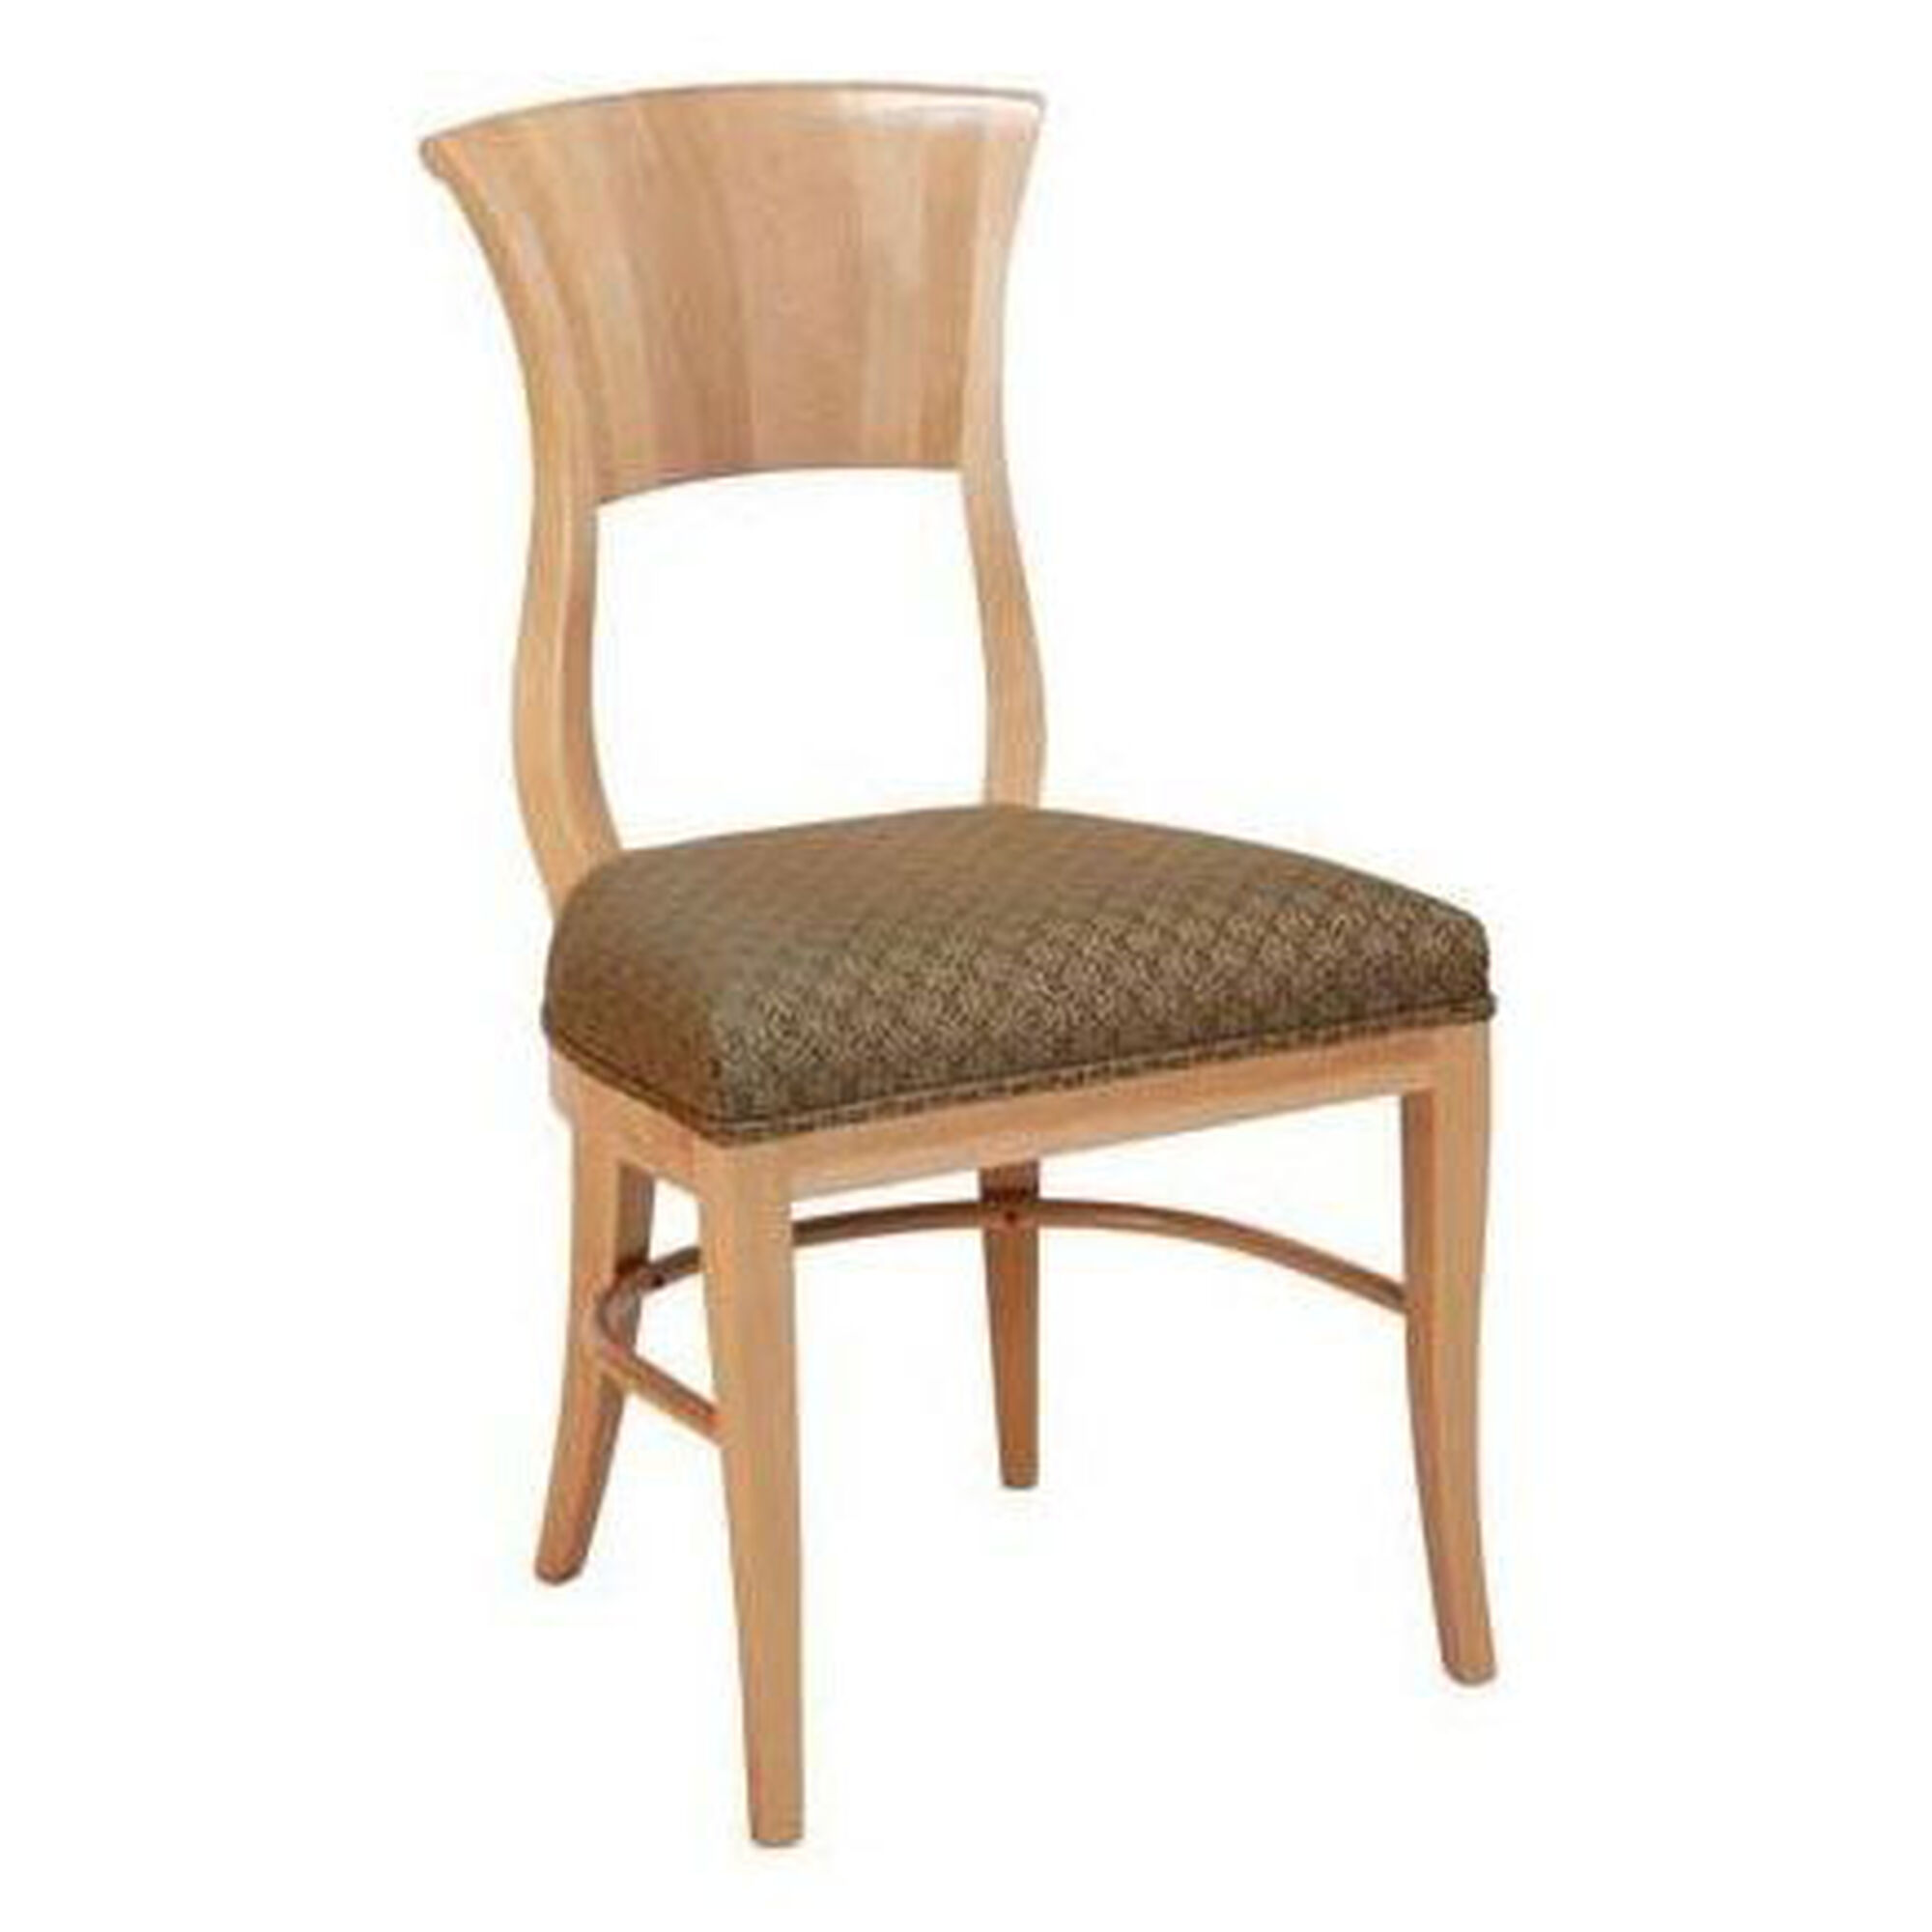 Ac furniture side chair grade